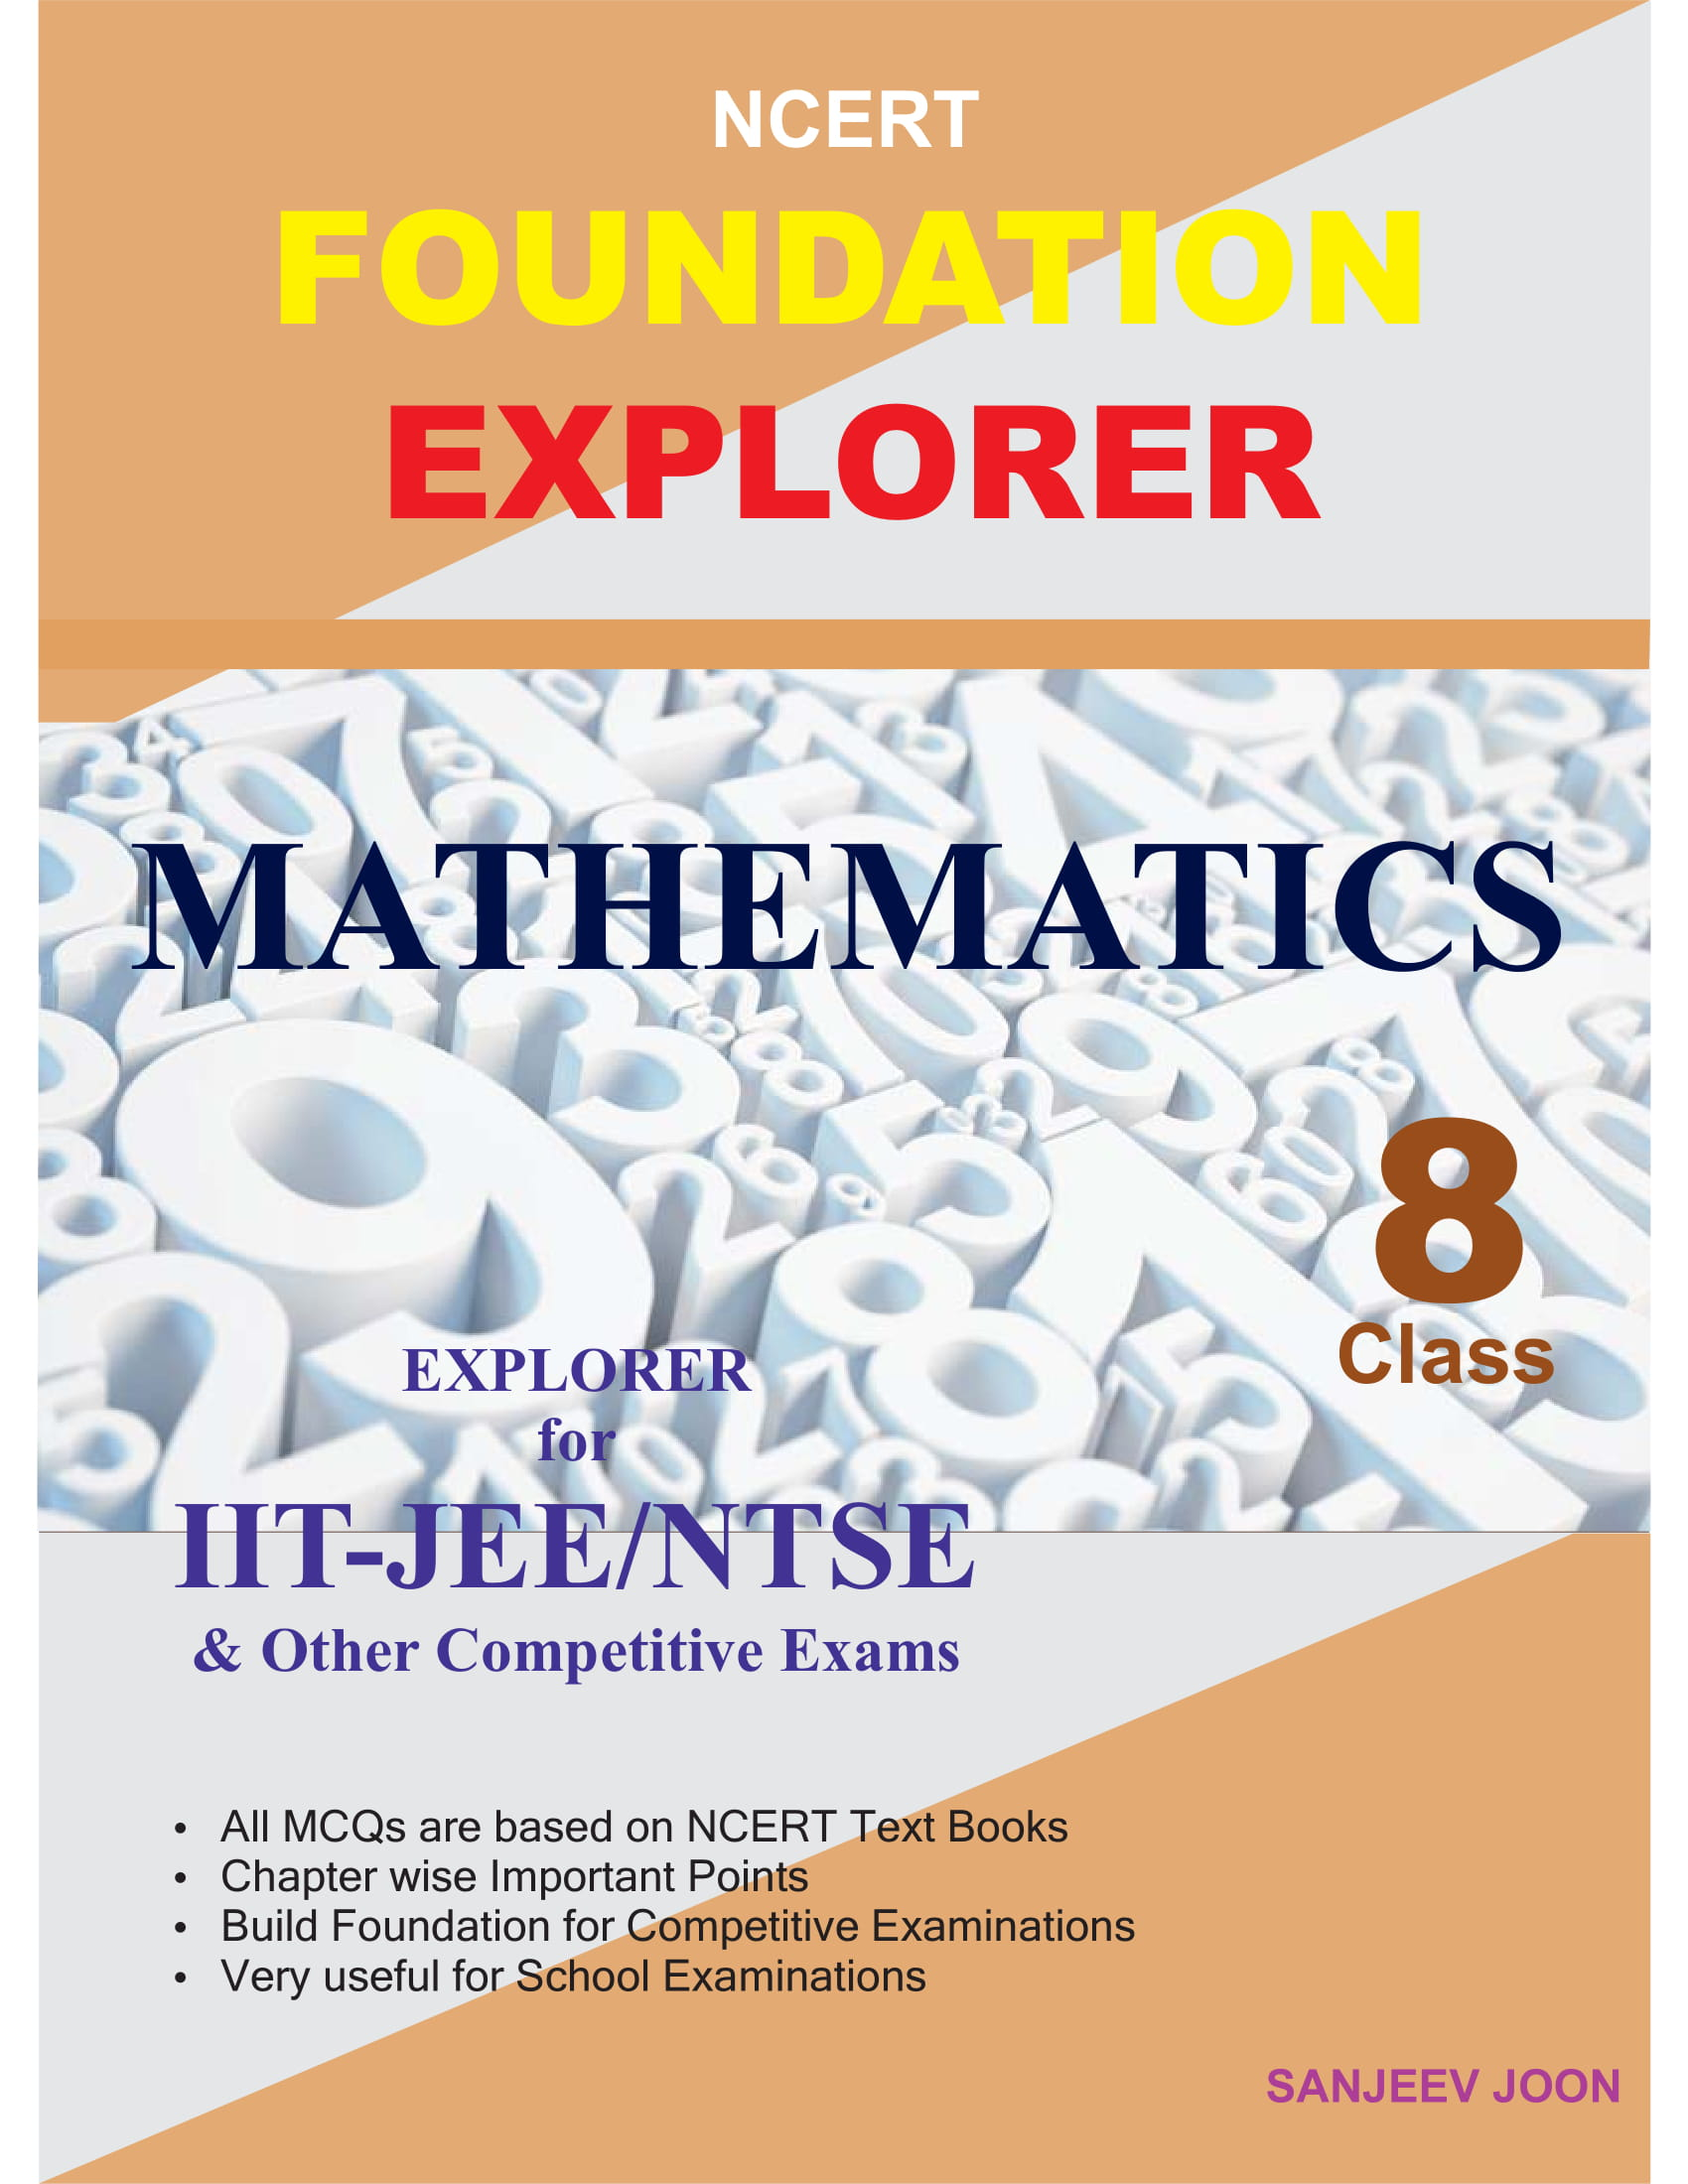 NCERT FOUNDATION EXPLORER MATHEMATICS CLASS-8